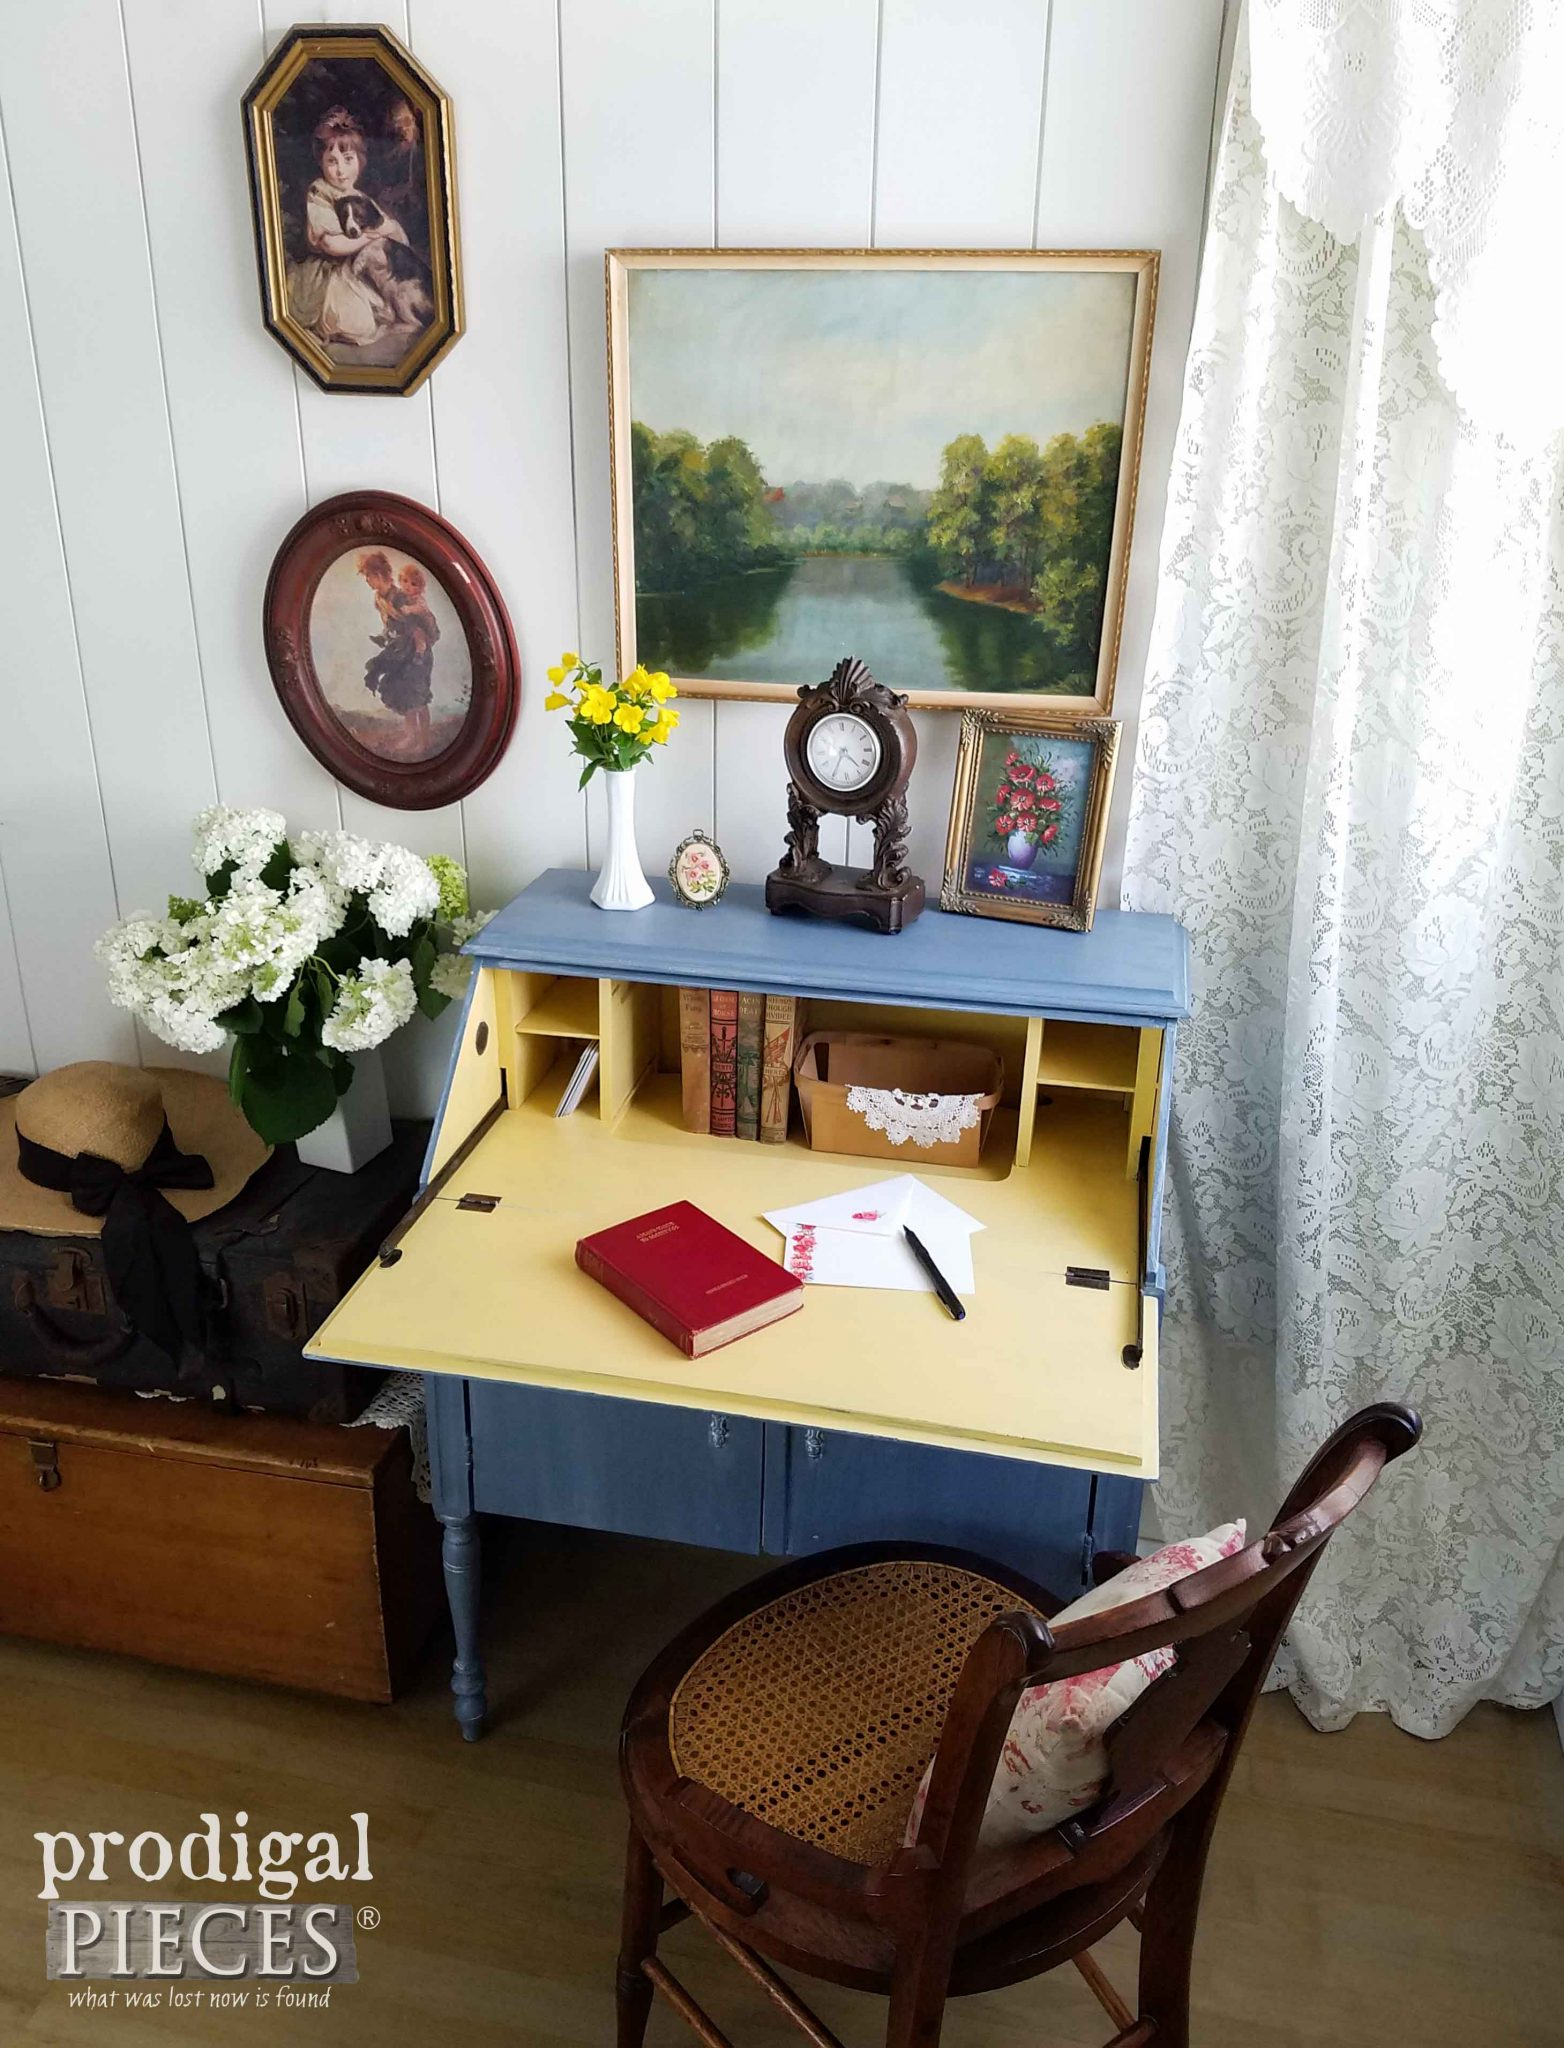 A Pop of Yellow for fun in this Vintage Secretary Desk Makeover by Prodigal Pieces | prodigalpieces.com